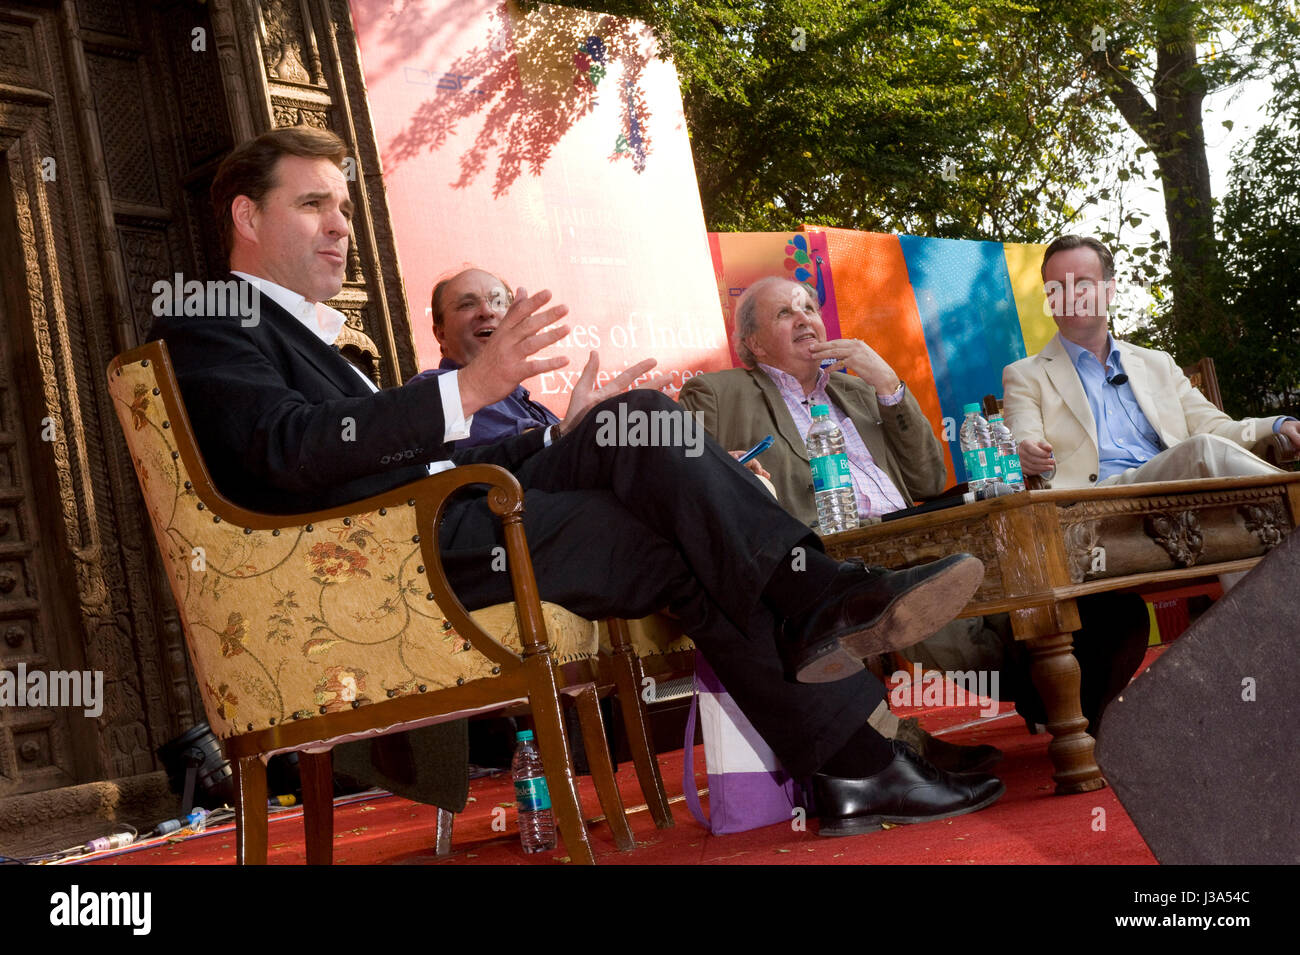 'Scotland prsents 'Under the Kilt' ' session sponsored  by Scottish govt. to the tune of 10K. seated - Stock Image